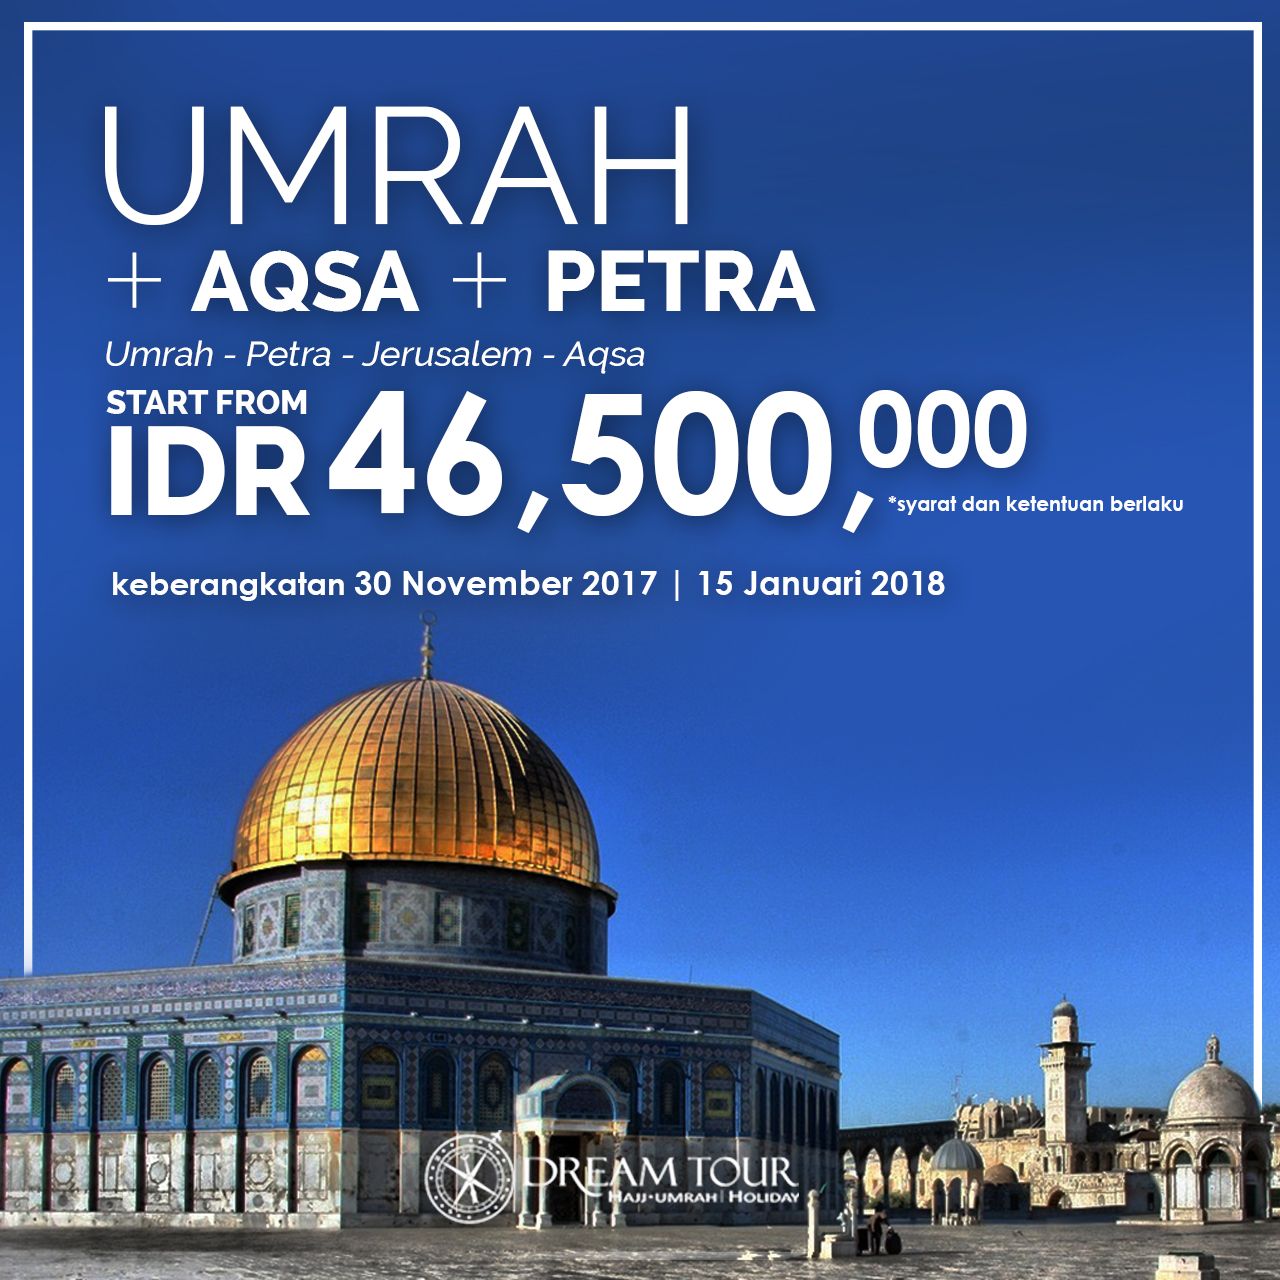 paket umroh plus, umroh plus, paket umroh plus 2017, pt dream tour and travel, umroh plus aqso